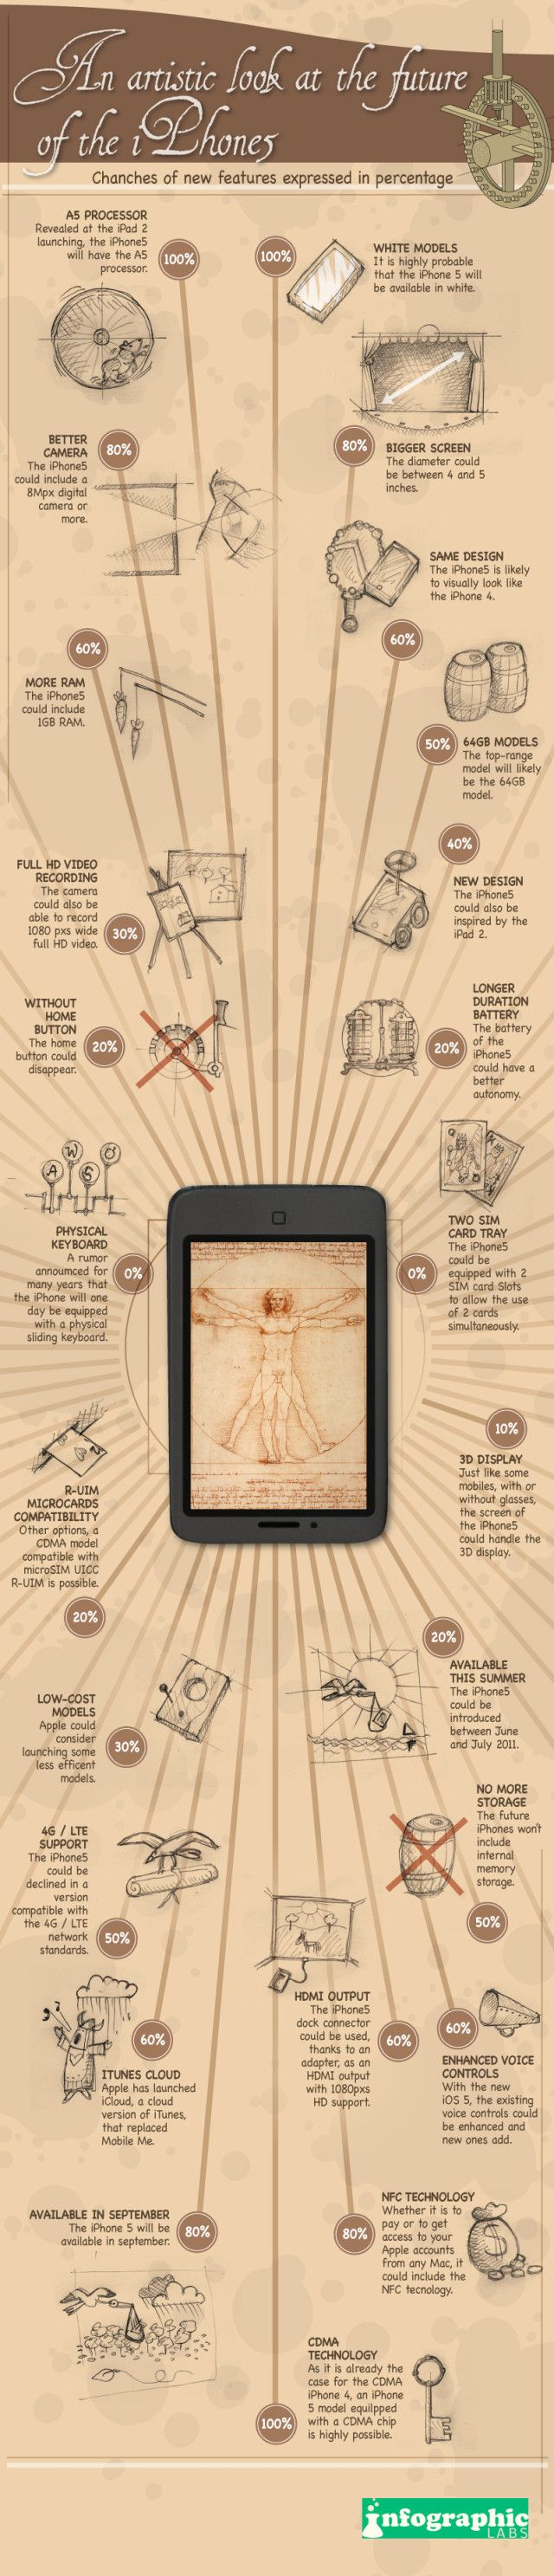 New Iphone Rumors [Infographic] - http://www.bestinfographics.co/new-iphone-rumors-infographic/